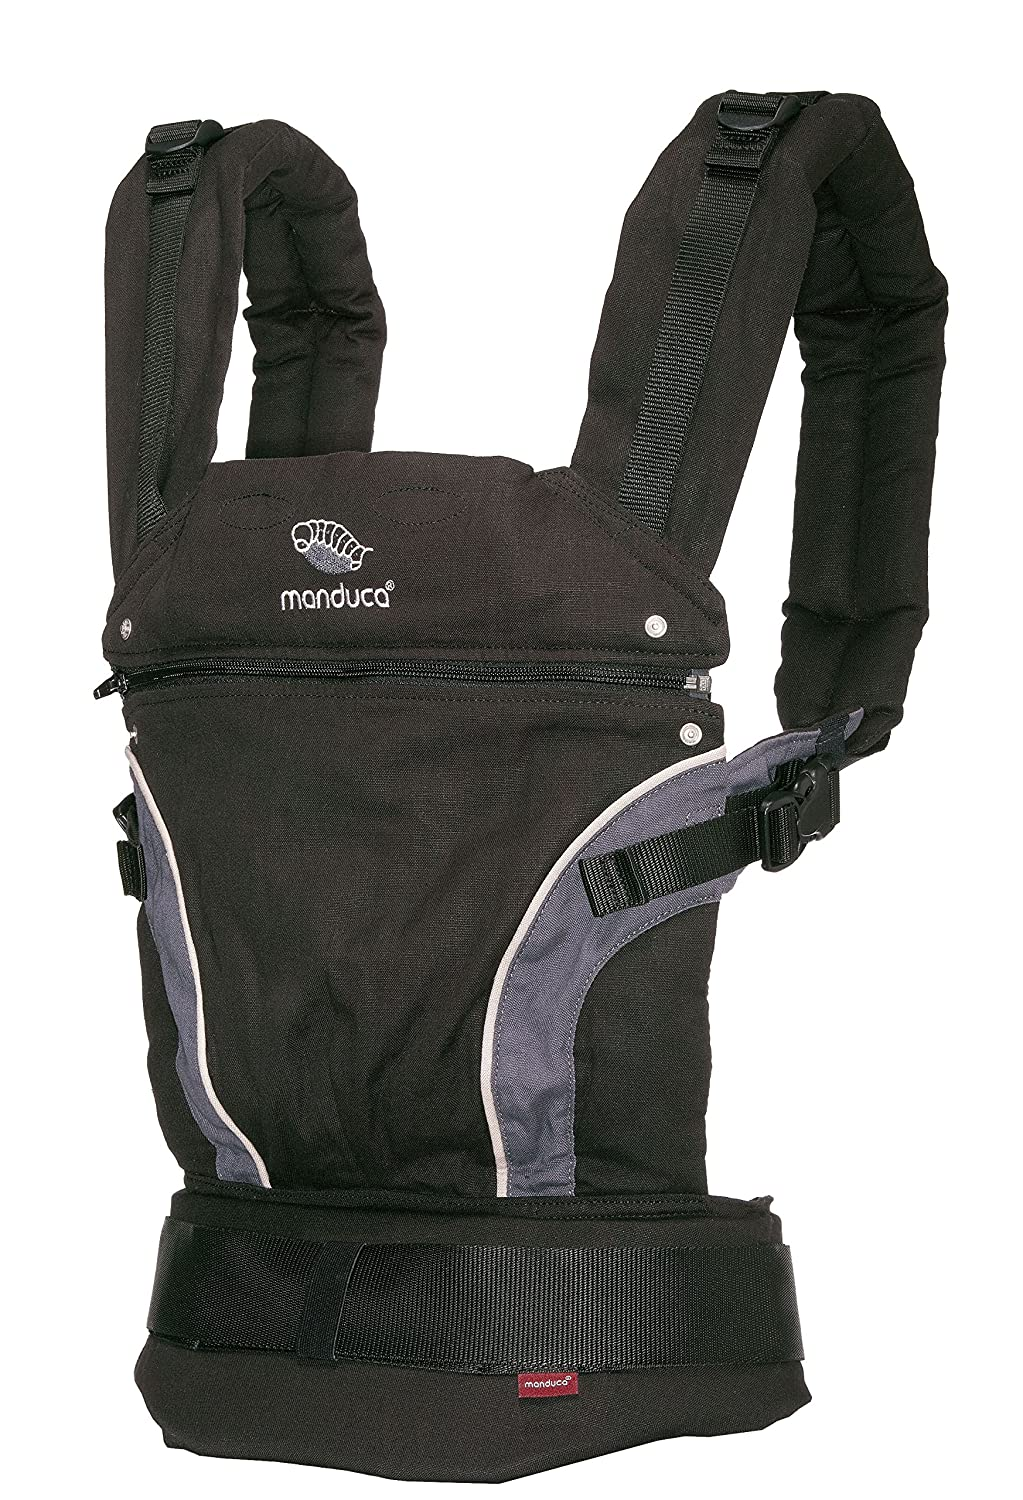 Manduca Standard Edition Carrier